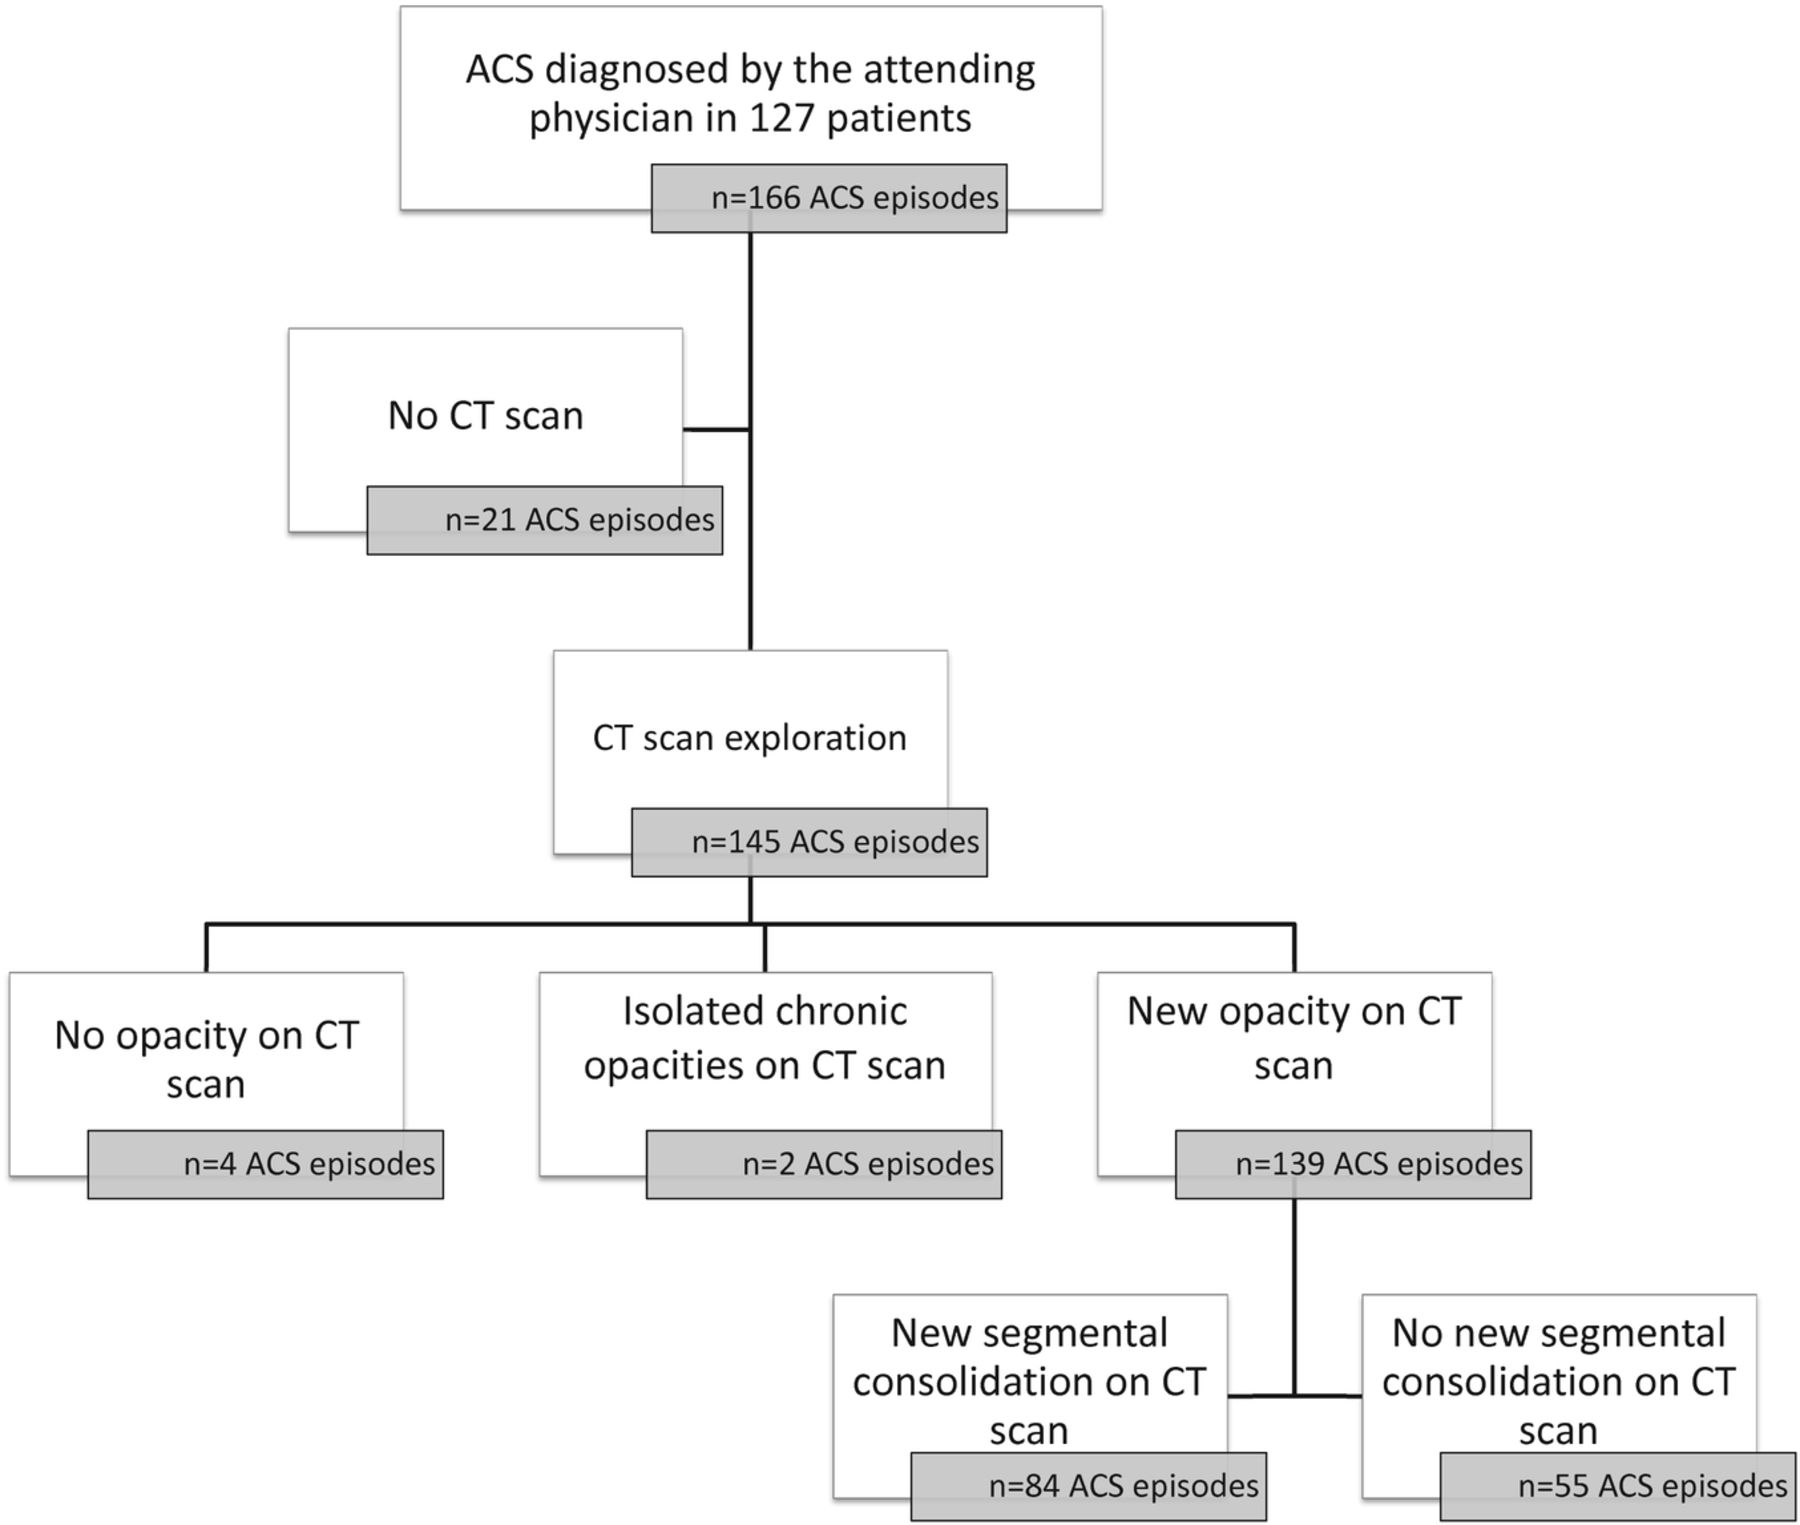 Lung imaging during acute chest syndrome in sickle cell disease download figure open in new tab download powerpoint figure 1 study flow chart geenschuldenfo Choice Image